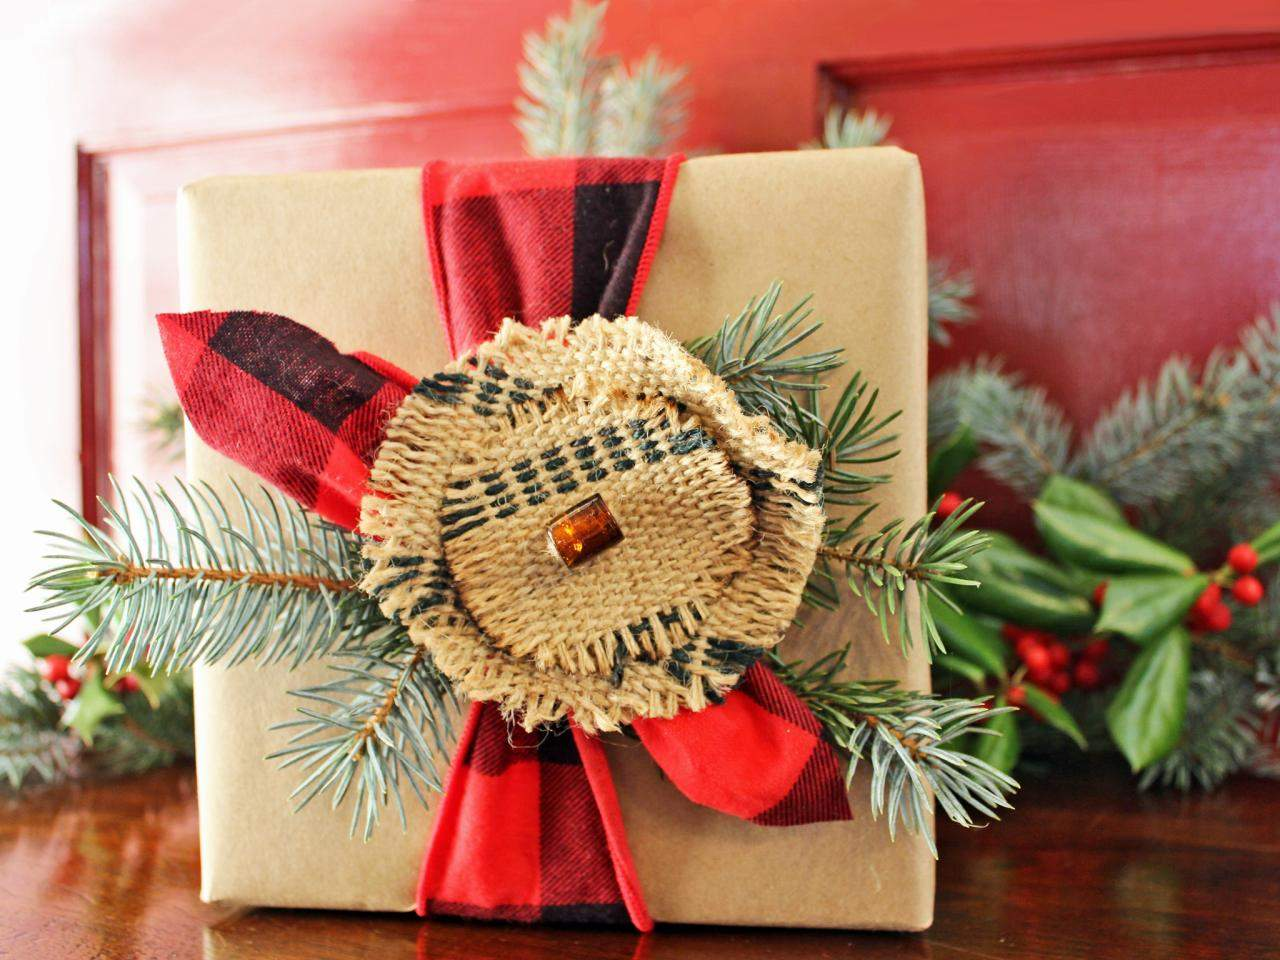 original_Camille-Smith-rustic-plaid-gift-wrap2.jpg.rend.hgtvcom.1280.960